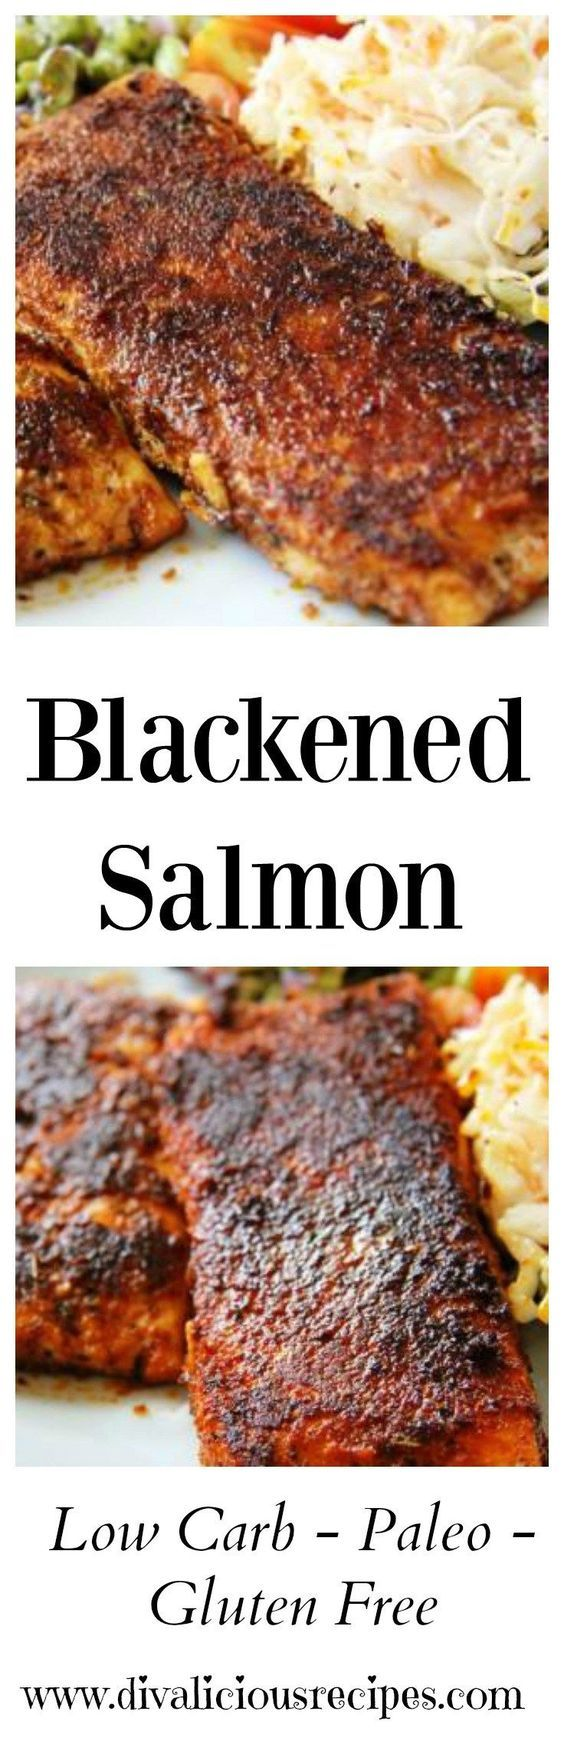 This blackened salmon dish is a mix of spices that give the black appearance yet packs a spicy taste. Recipe - http://divaliciousrecipes.com/2014/07/09/blackened-salmon-fillets/